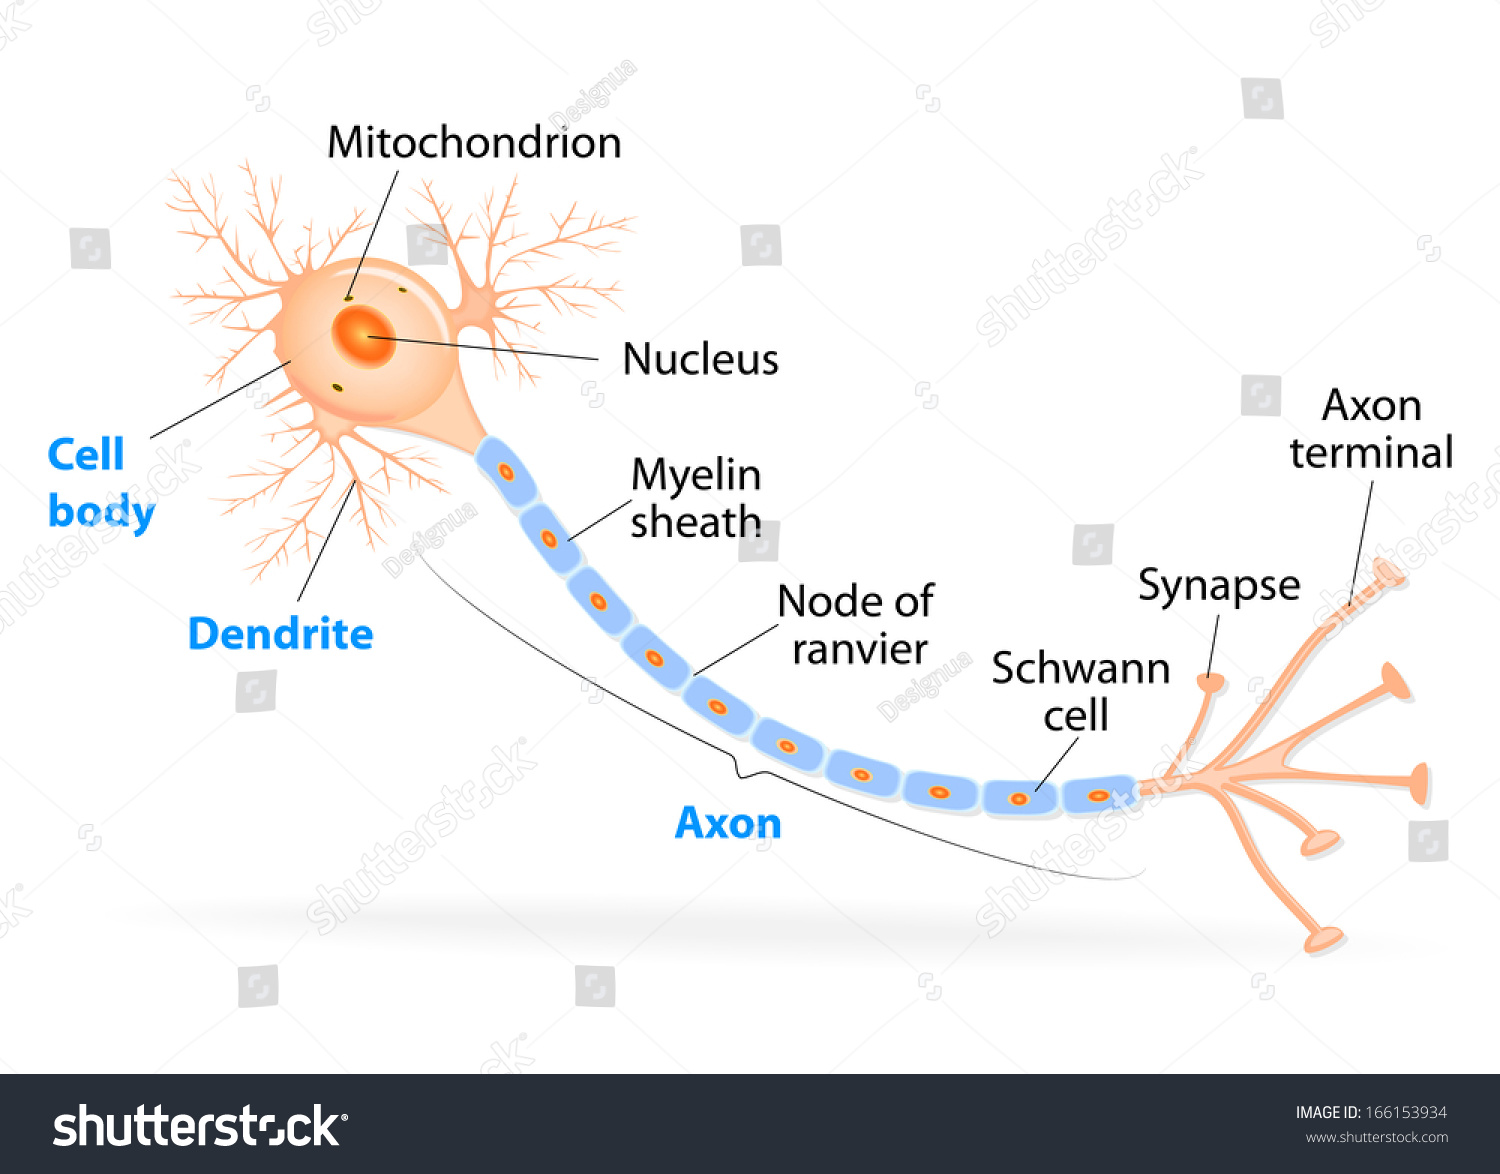 Anatomy typical human neuron axon synapse stock illustration anatomy of a typical human neuron axon synapse dendrite mitochondrion myelin ccuart Gallery